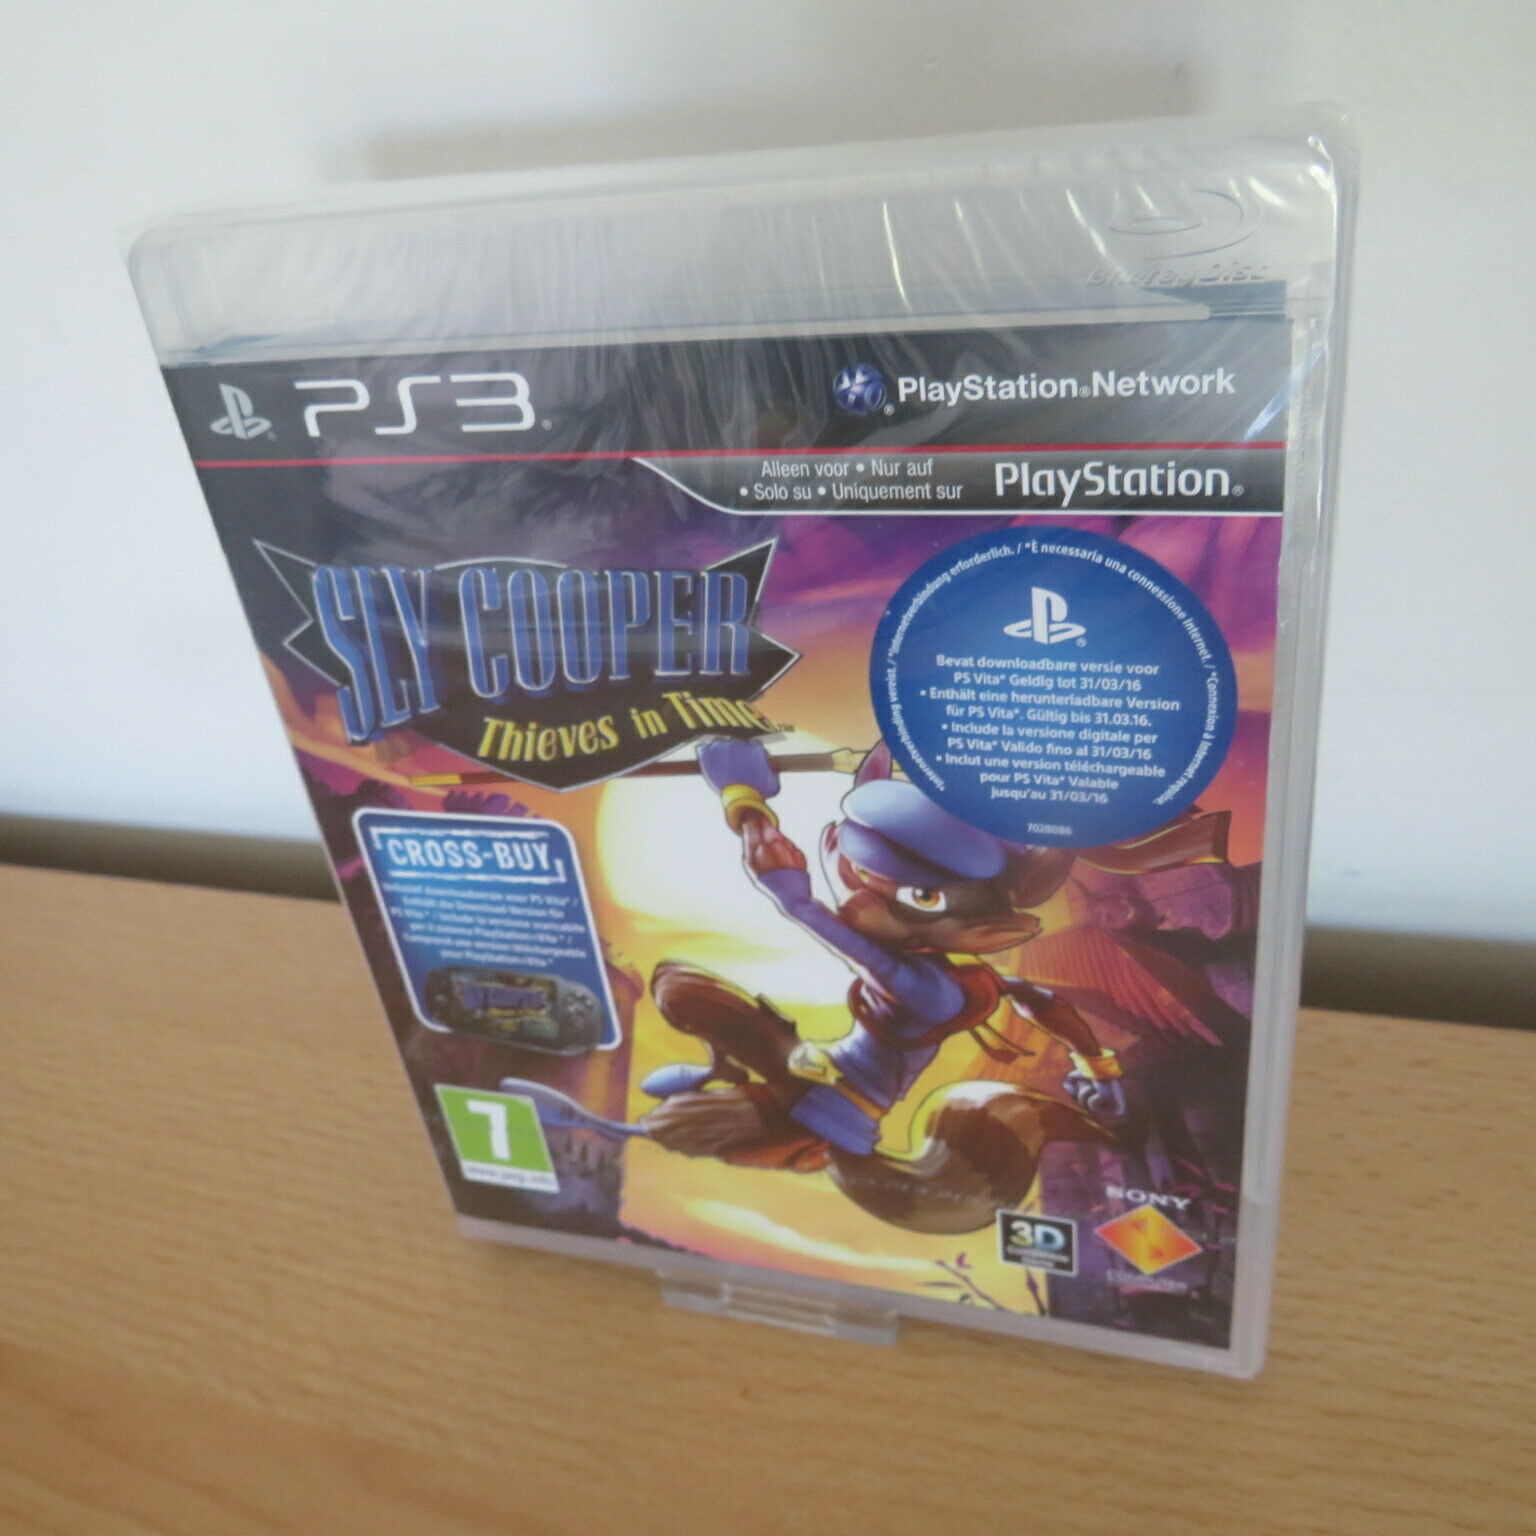 Sly Cooper - Thieves of Time - PlayStation PS3 Games - New & Sealed pal